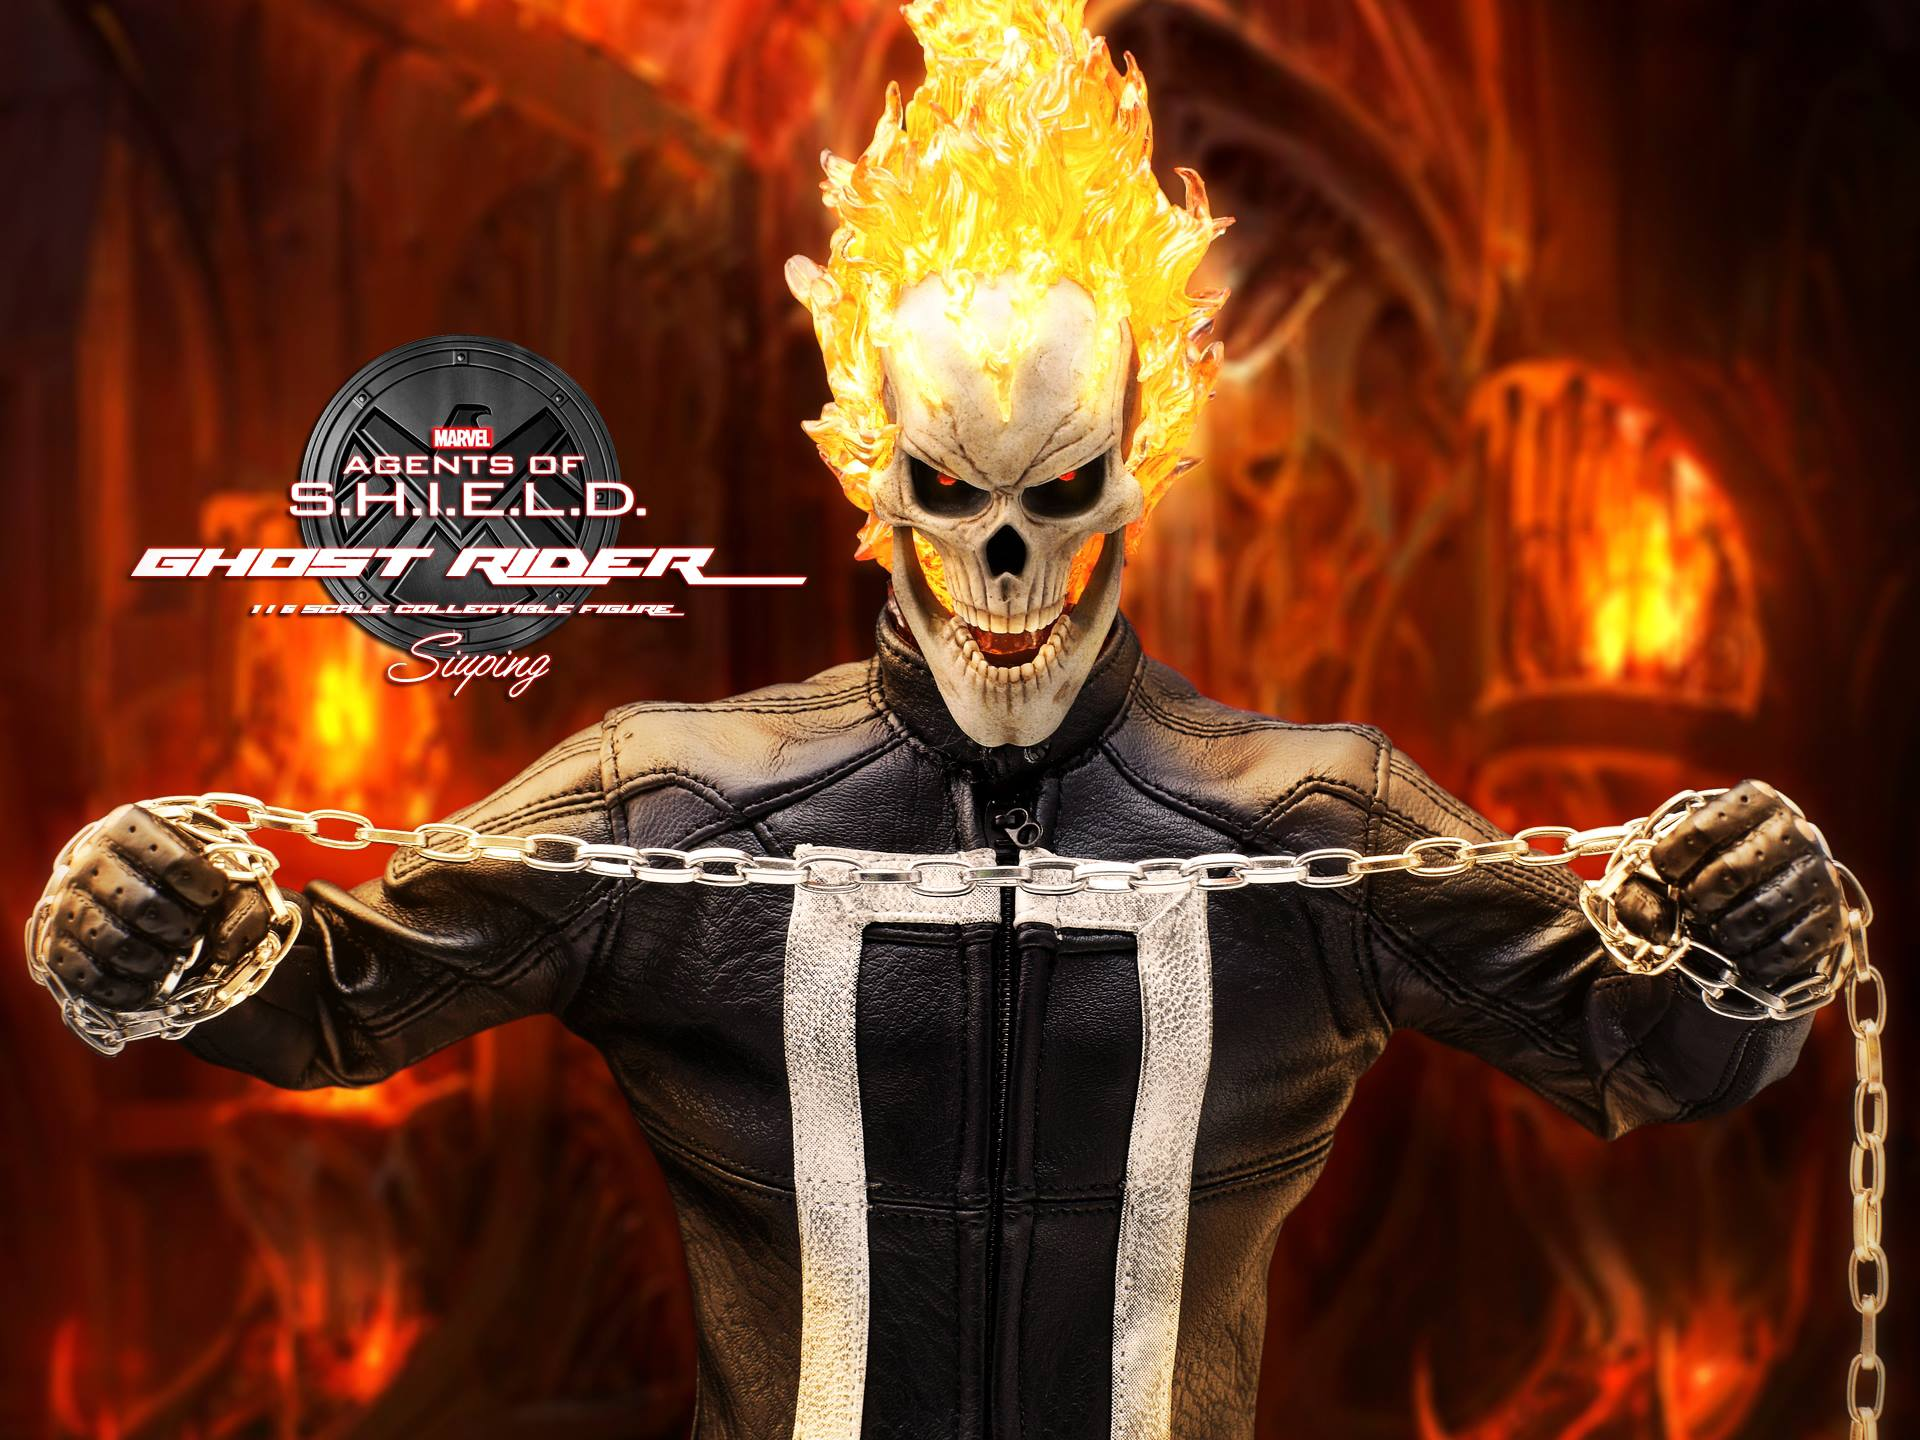 Hot Toys Agents of S.H.I.E.L.D. Ghost Rider Final Promo Images ...